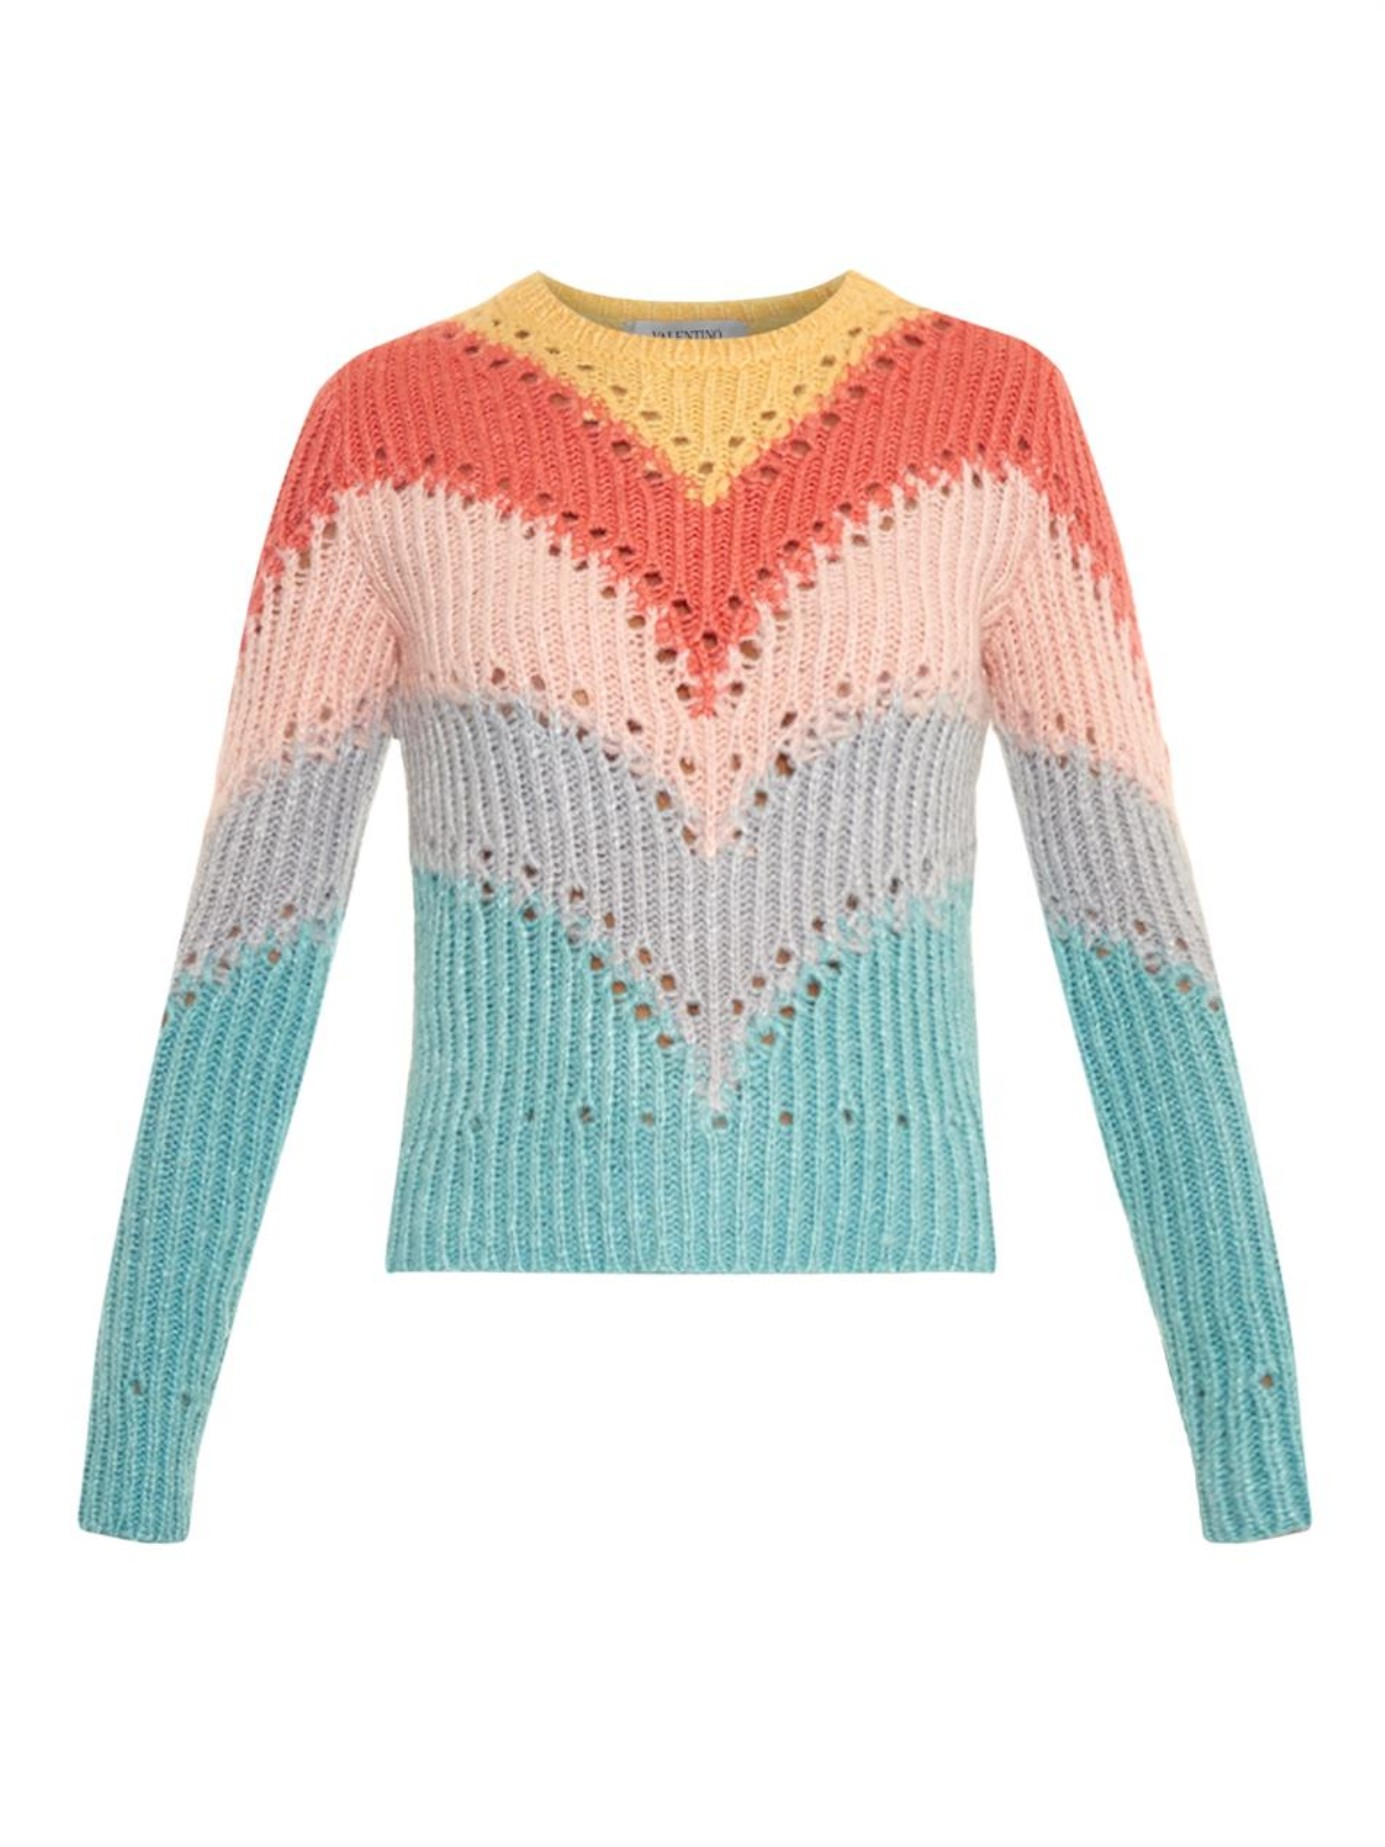 2018 New Cheap Online KNITWEAR - Jumpers Valentino Websites Cheap Online 100% Authentic Cheap Online Cheap Sale Amazon Sale Official Site 2dJxc